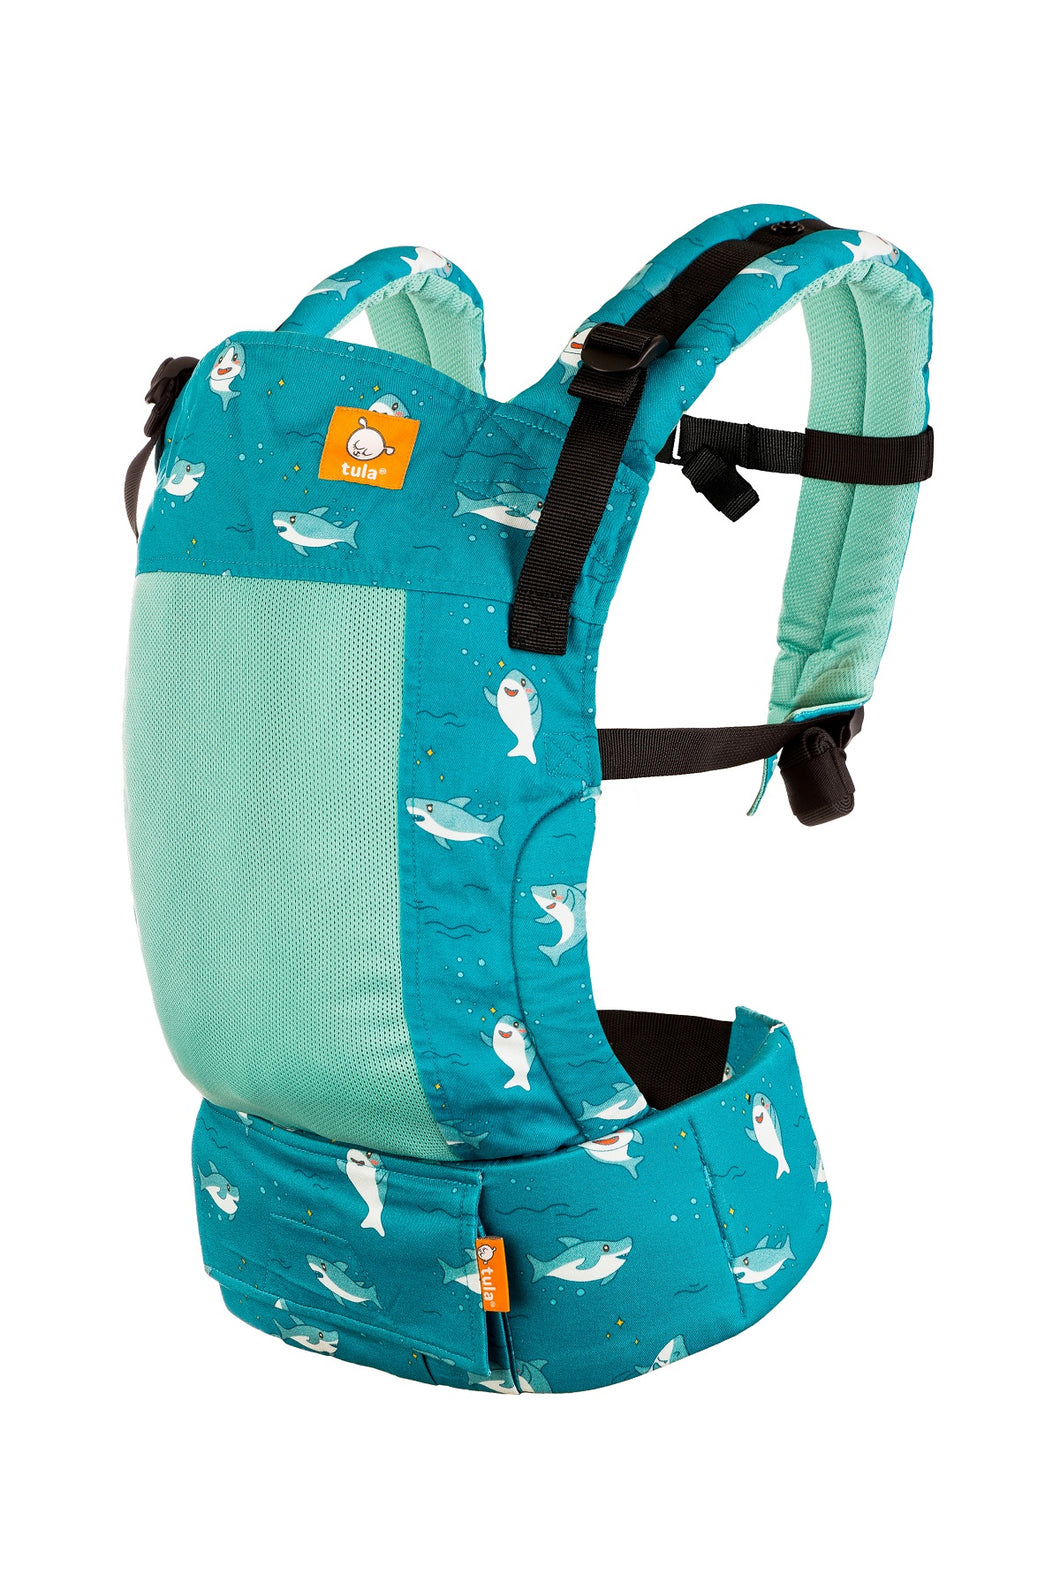 Coast Baby Shark - Tula Free-to-Grow Baby Carrier Free-to-Grow Coast